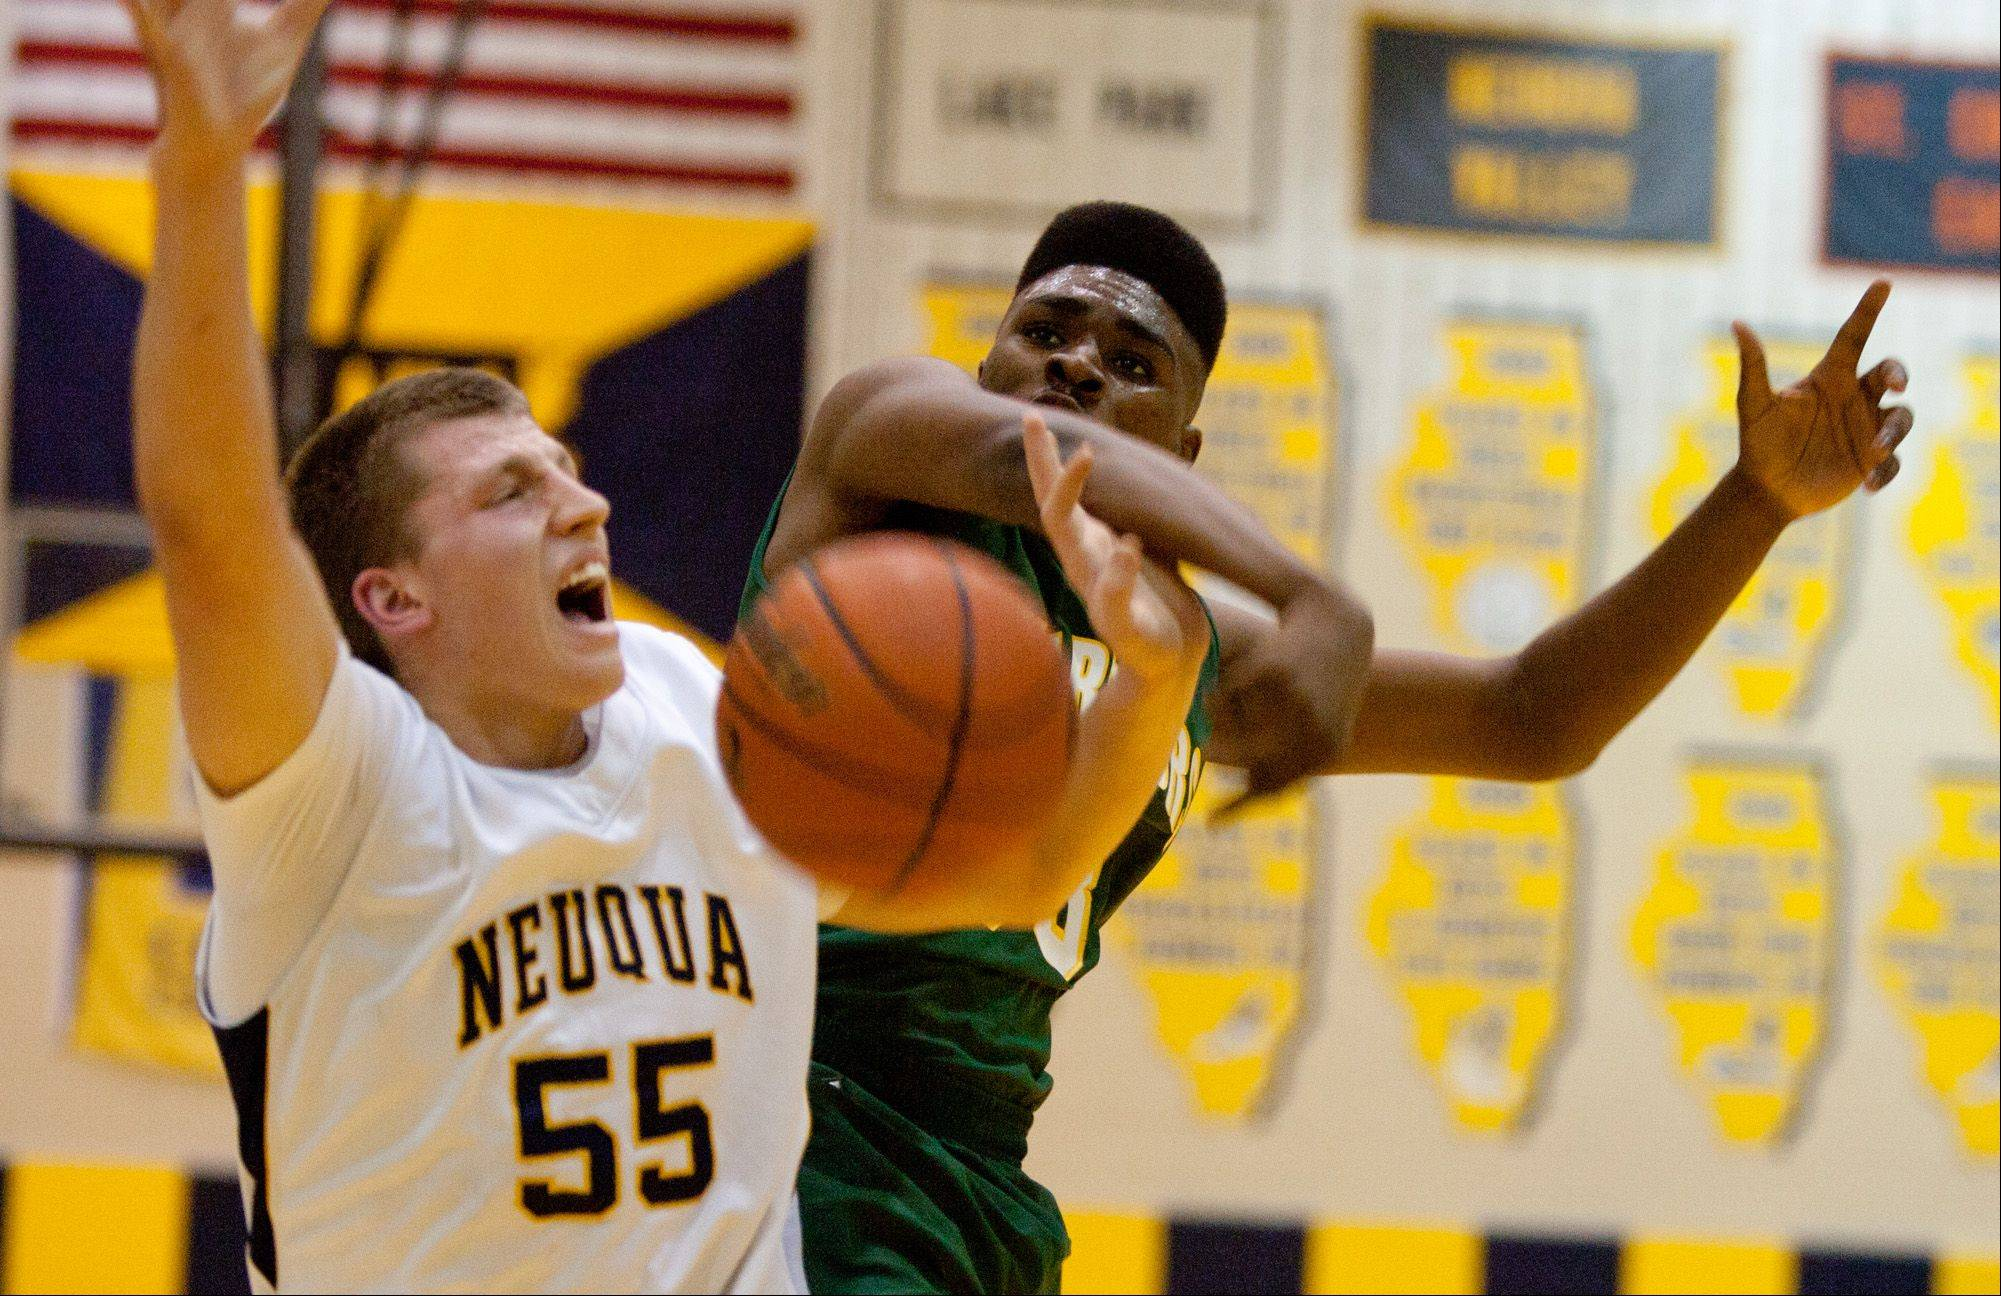 Neuqua Valley's Pat Kenny (55) has his shot blocked by Waubonsie Valley's Javares Stewart, right, during boy's basketball action in Naperville.